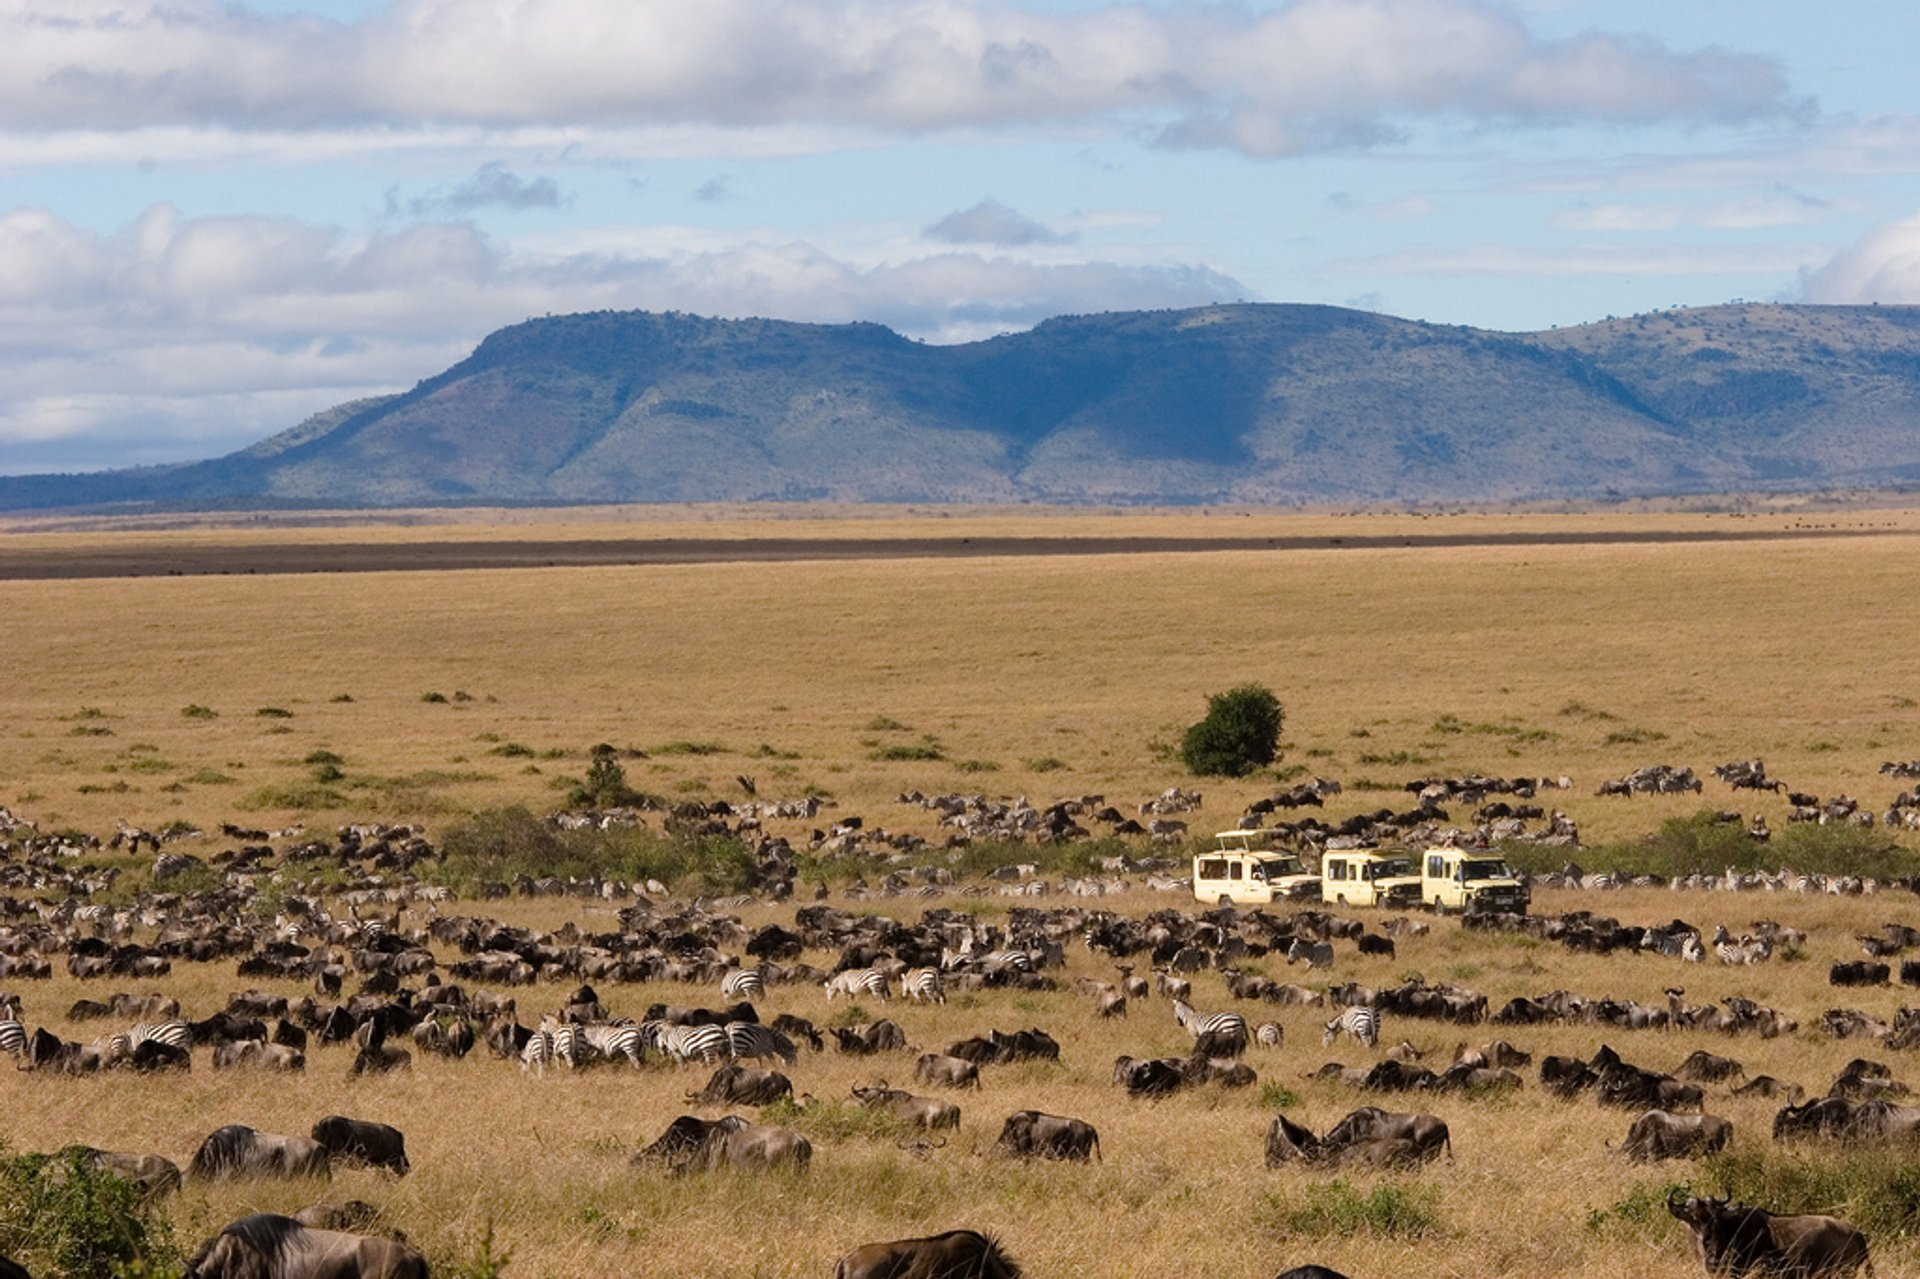 Wildebeest Migration at Mara Game Reserve, Kenya